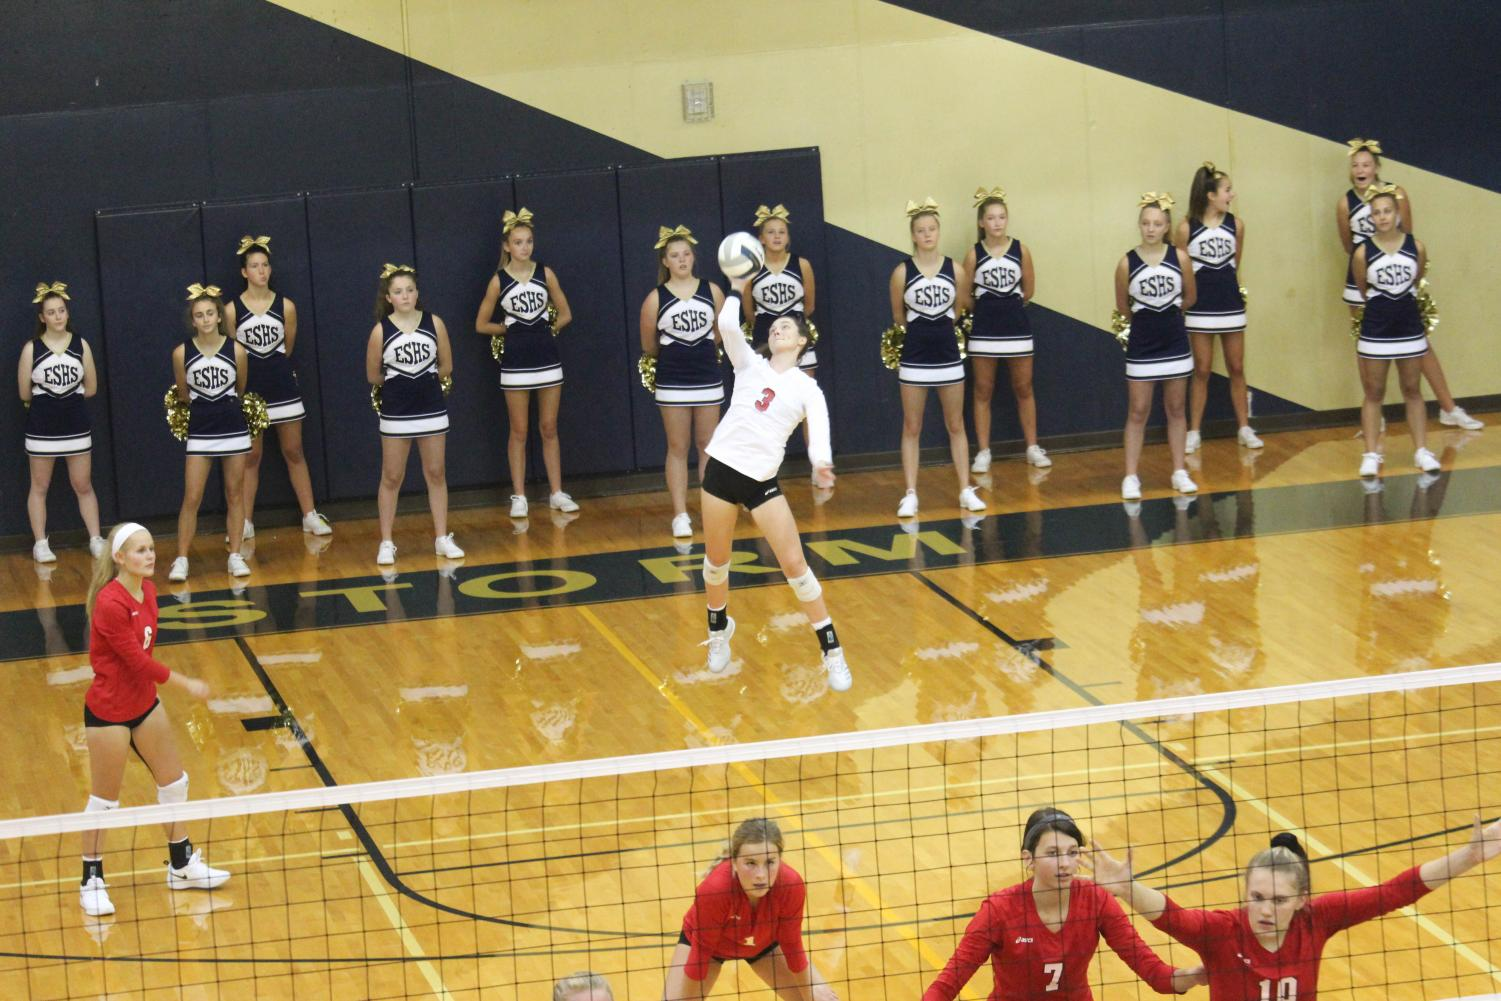 Senior Maggie McElhose serving the ball at the Elkhorn vs. Elkhorn South game.